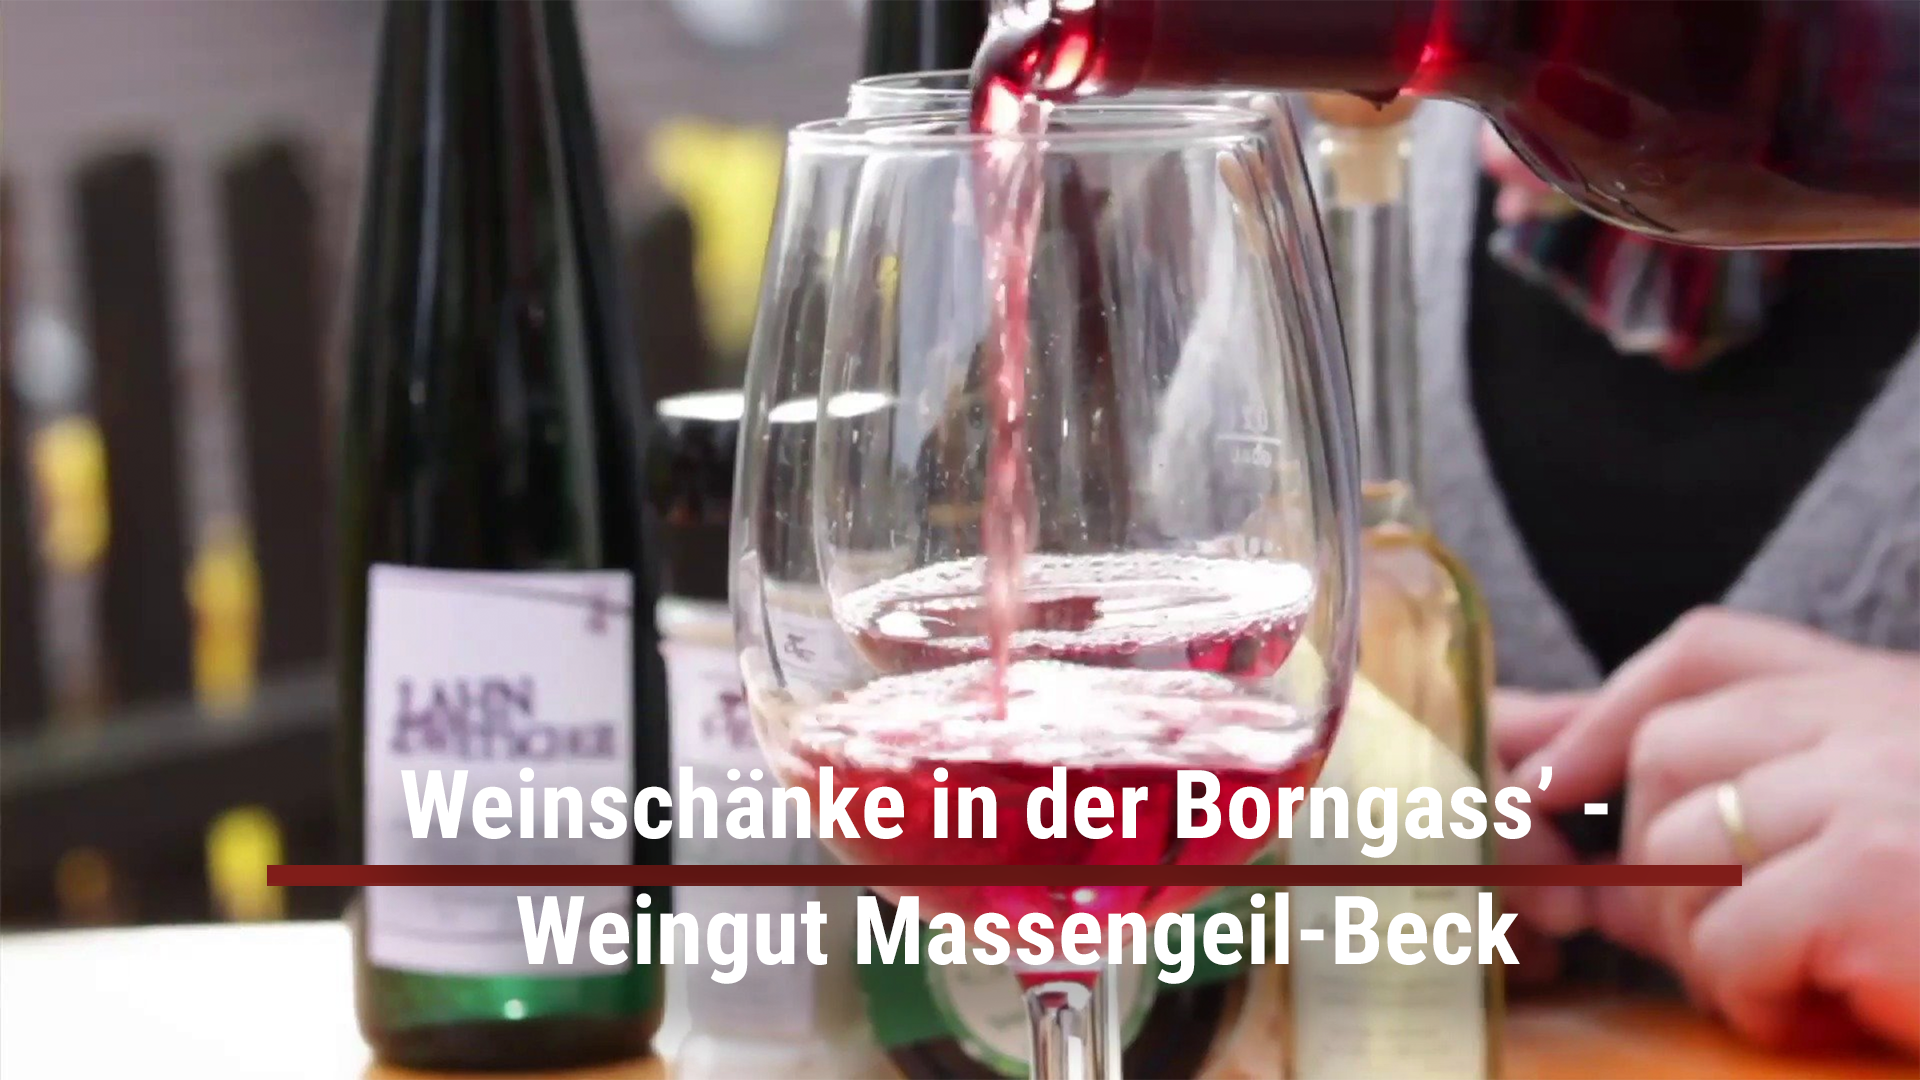 Weinschänke in Borngass '- Massengeil-Beck winery